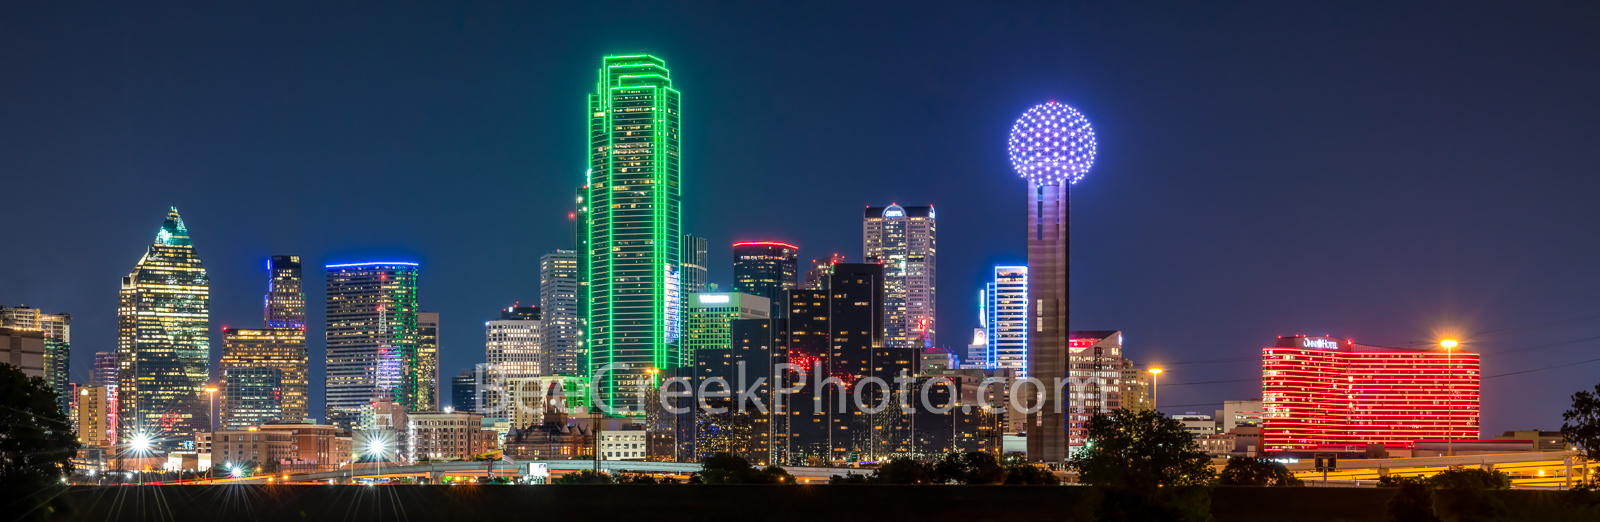 Dallas skyline, night, dallas pictures, Dallas, downtown, images, photo, Reunion Tower, Omni Hotel, Heritage Plaza, Fountain Place, Bank of America, colorful, texas skylines, photo